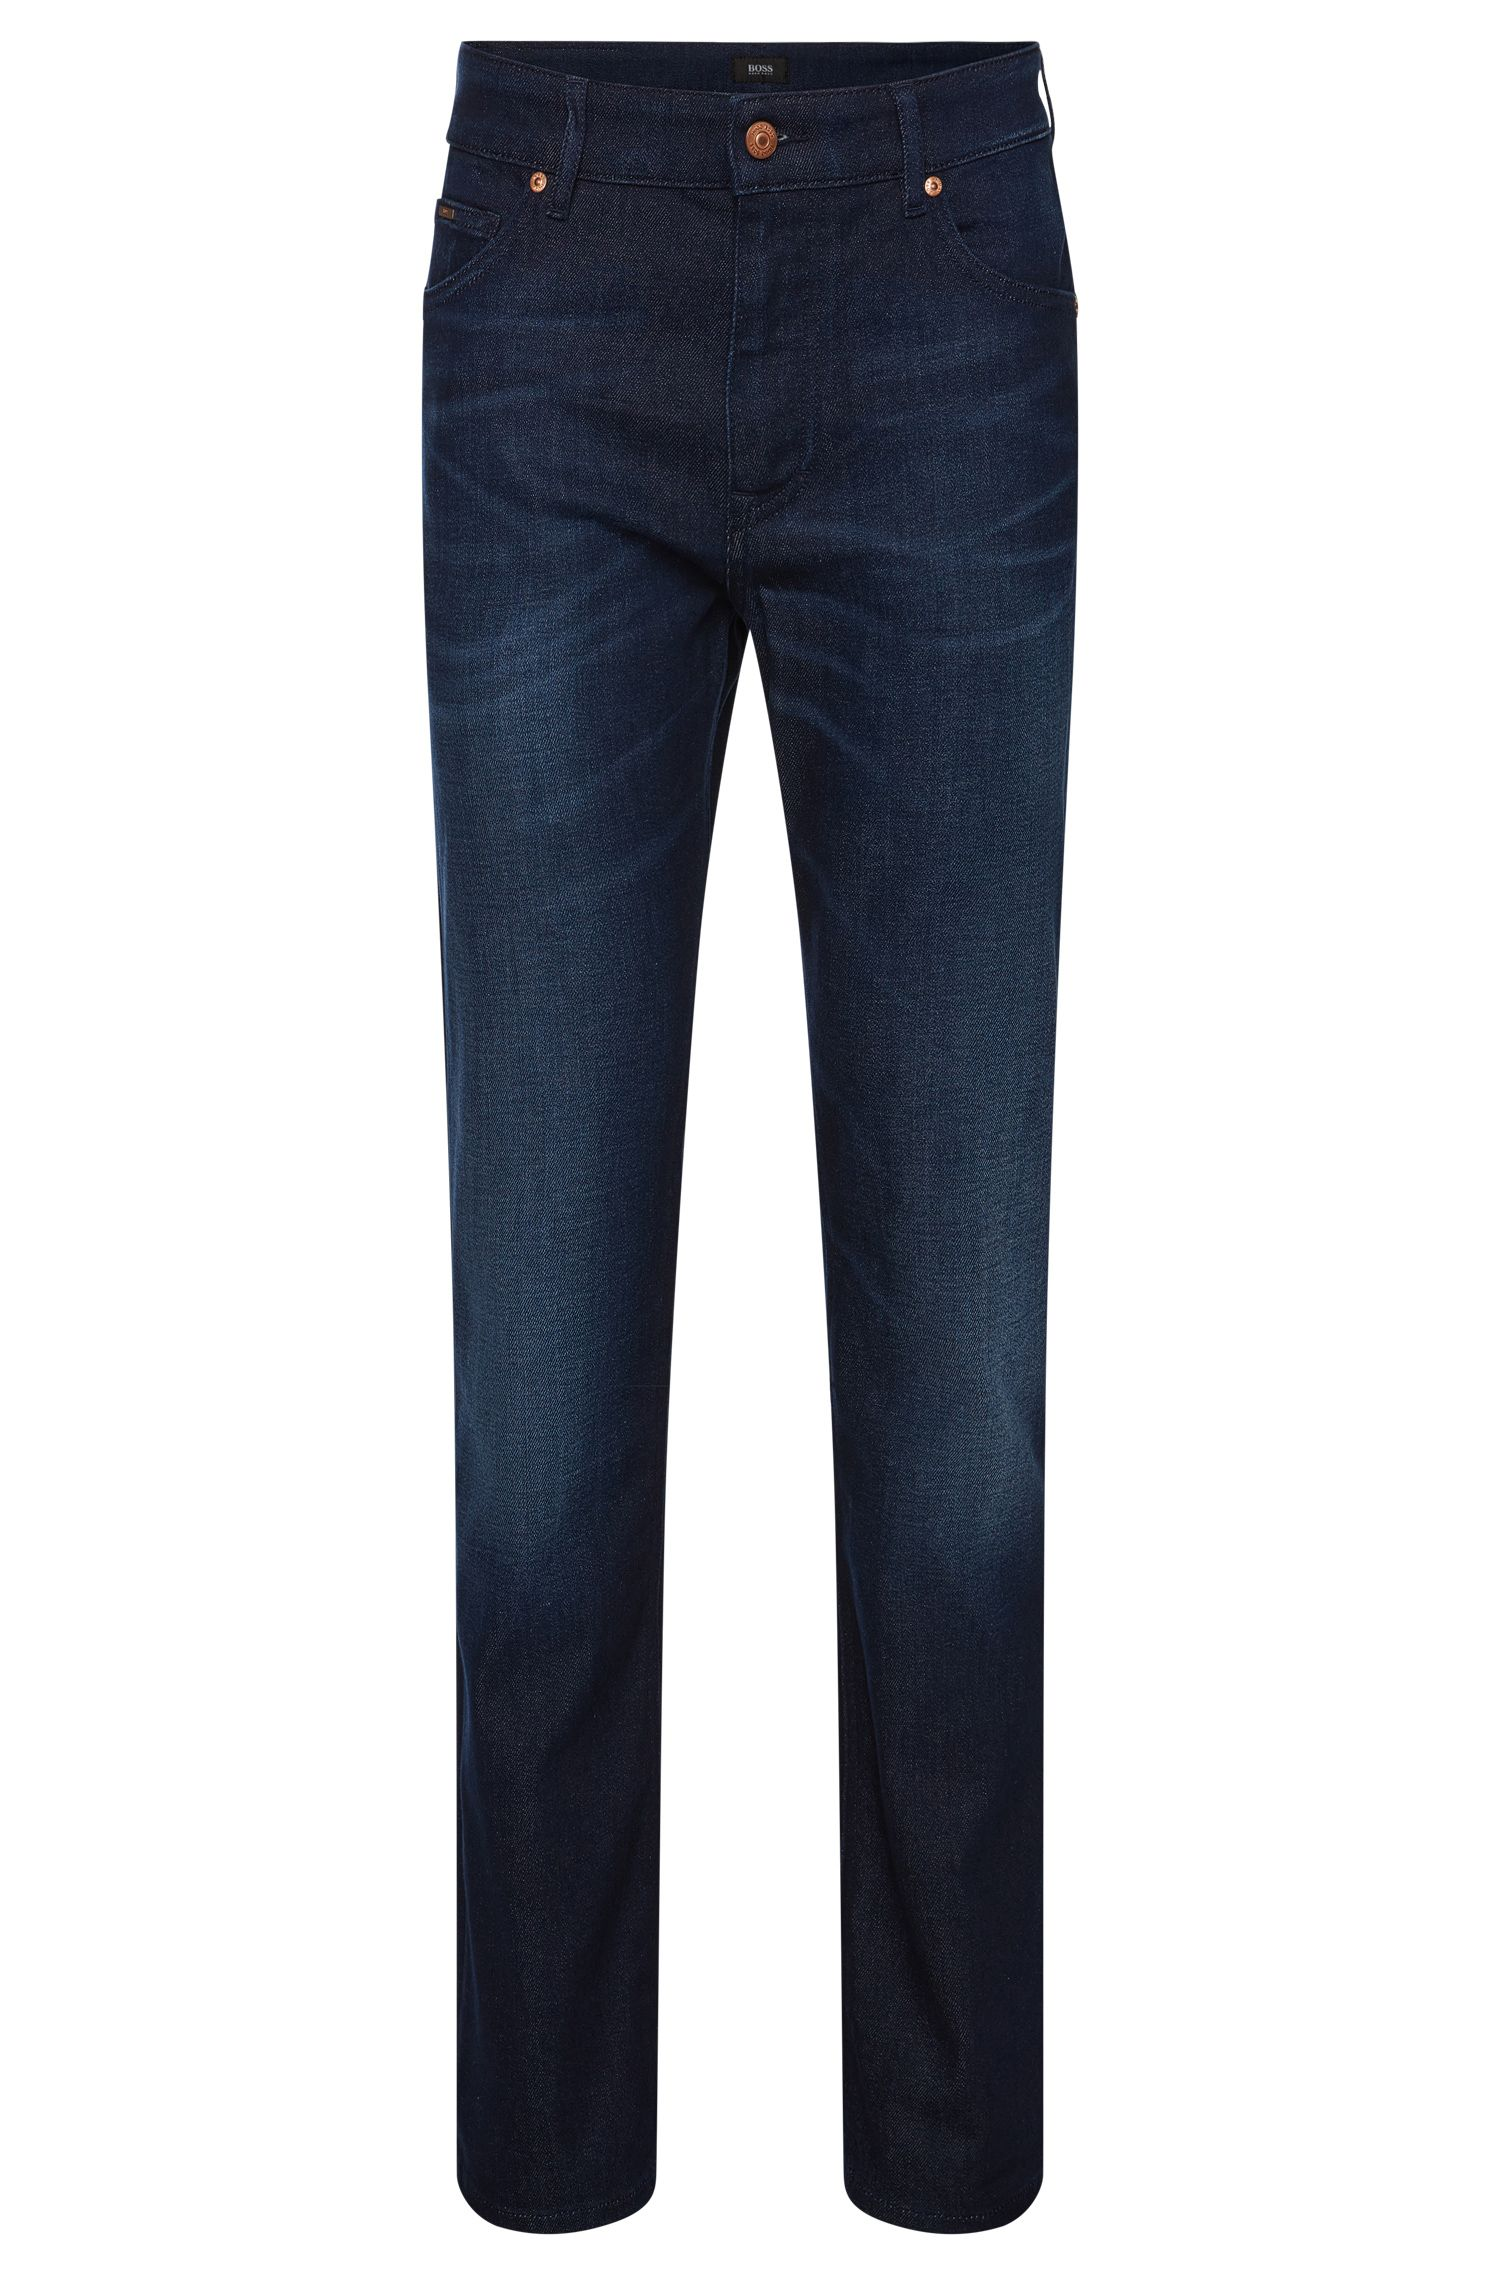 Relaxed-Fit Jeans aus Baumwoll-Mix mit Elasthan: 'Albany'